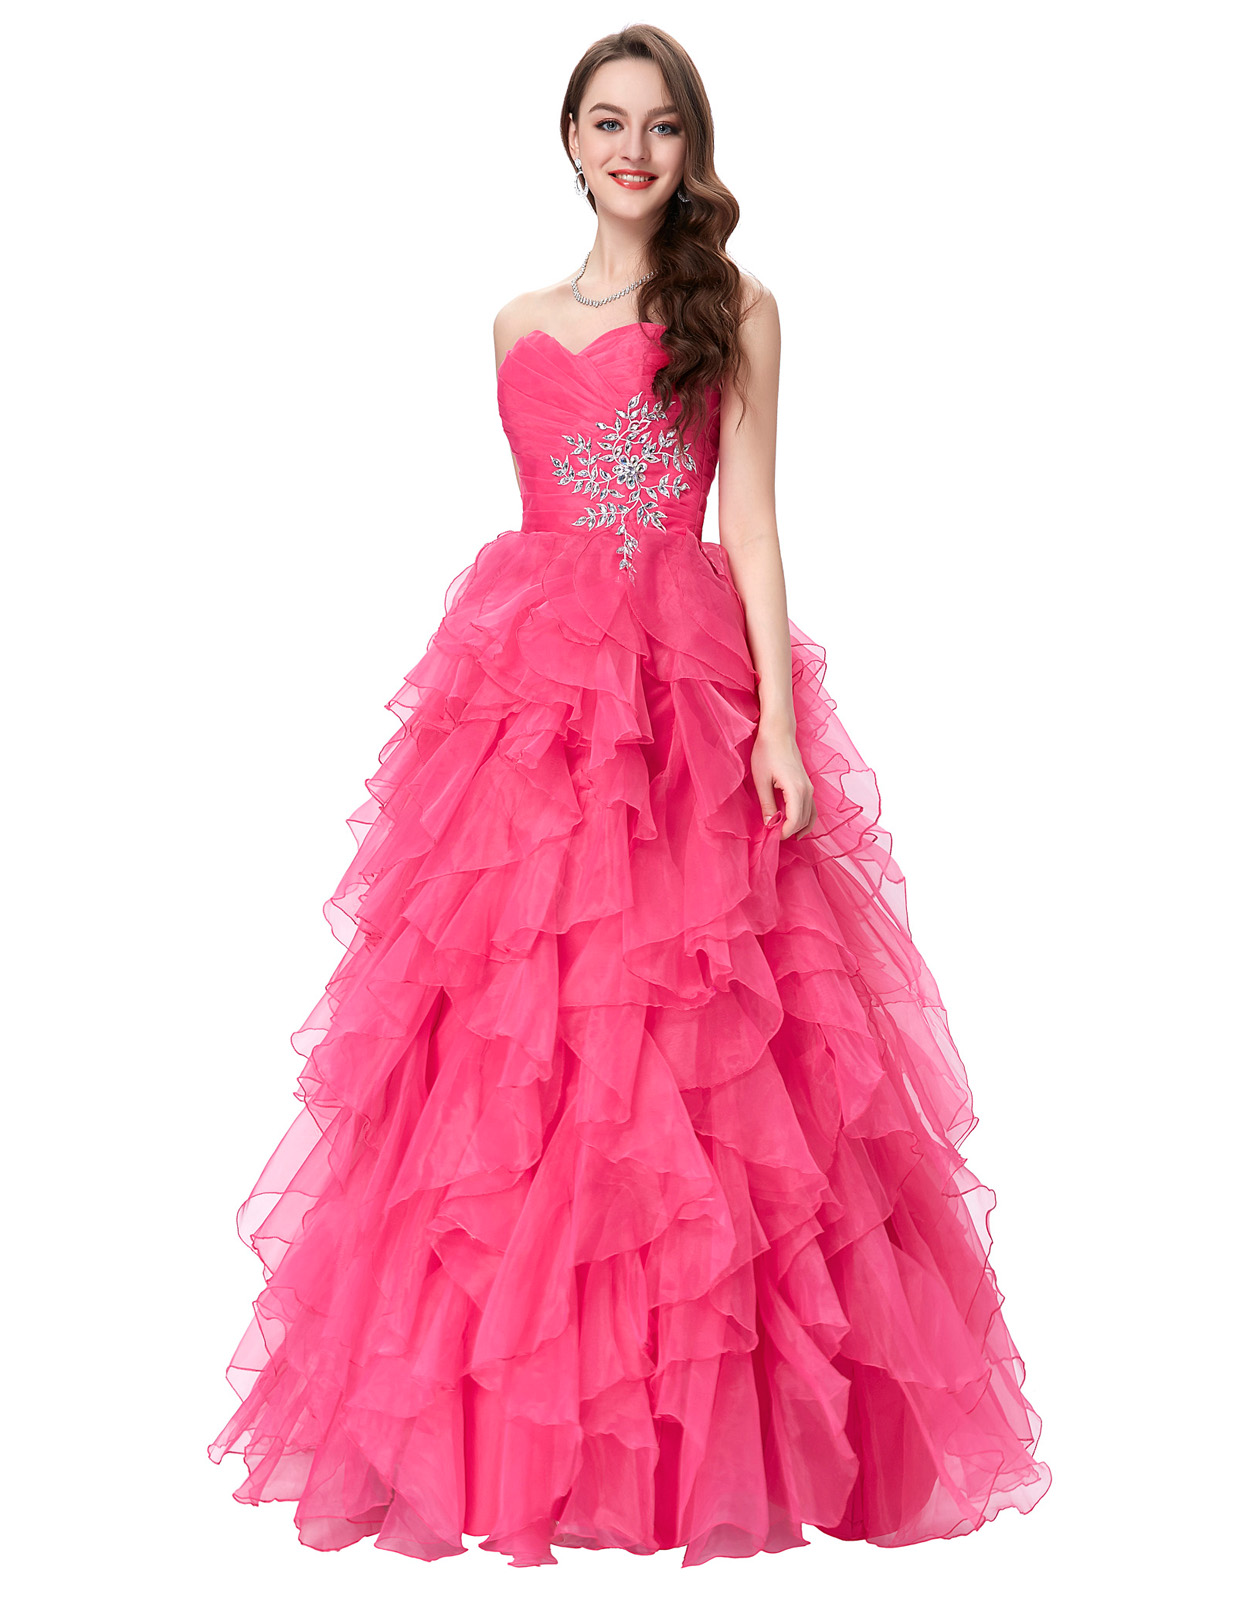 Hot quinceanera bridal dresses formal prom party ball gown for High low ball gown wedding dress